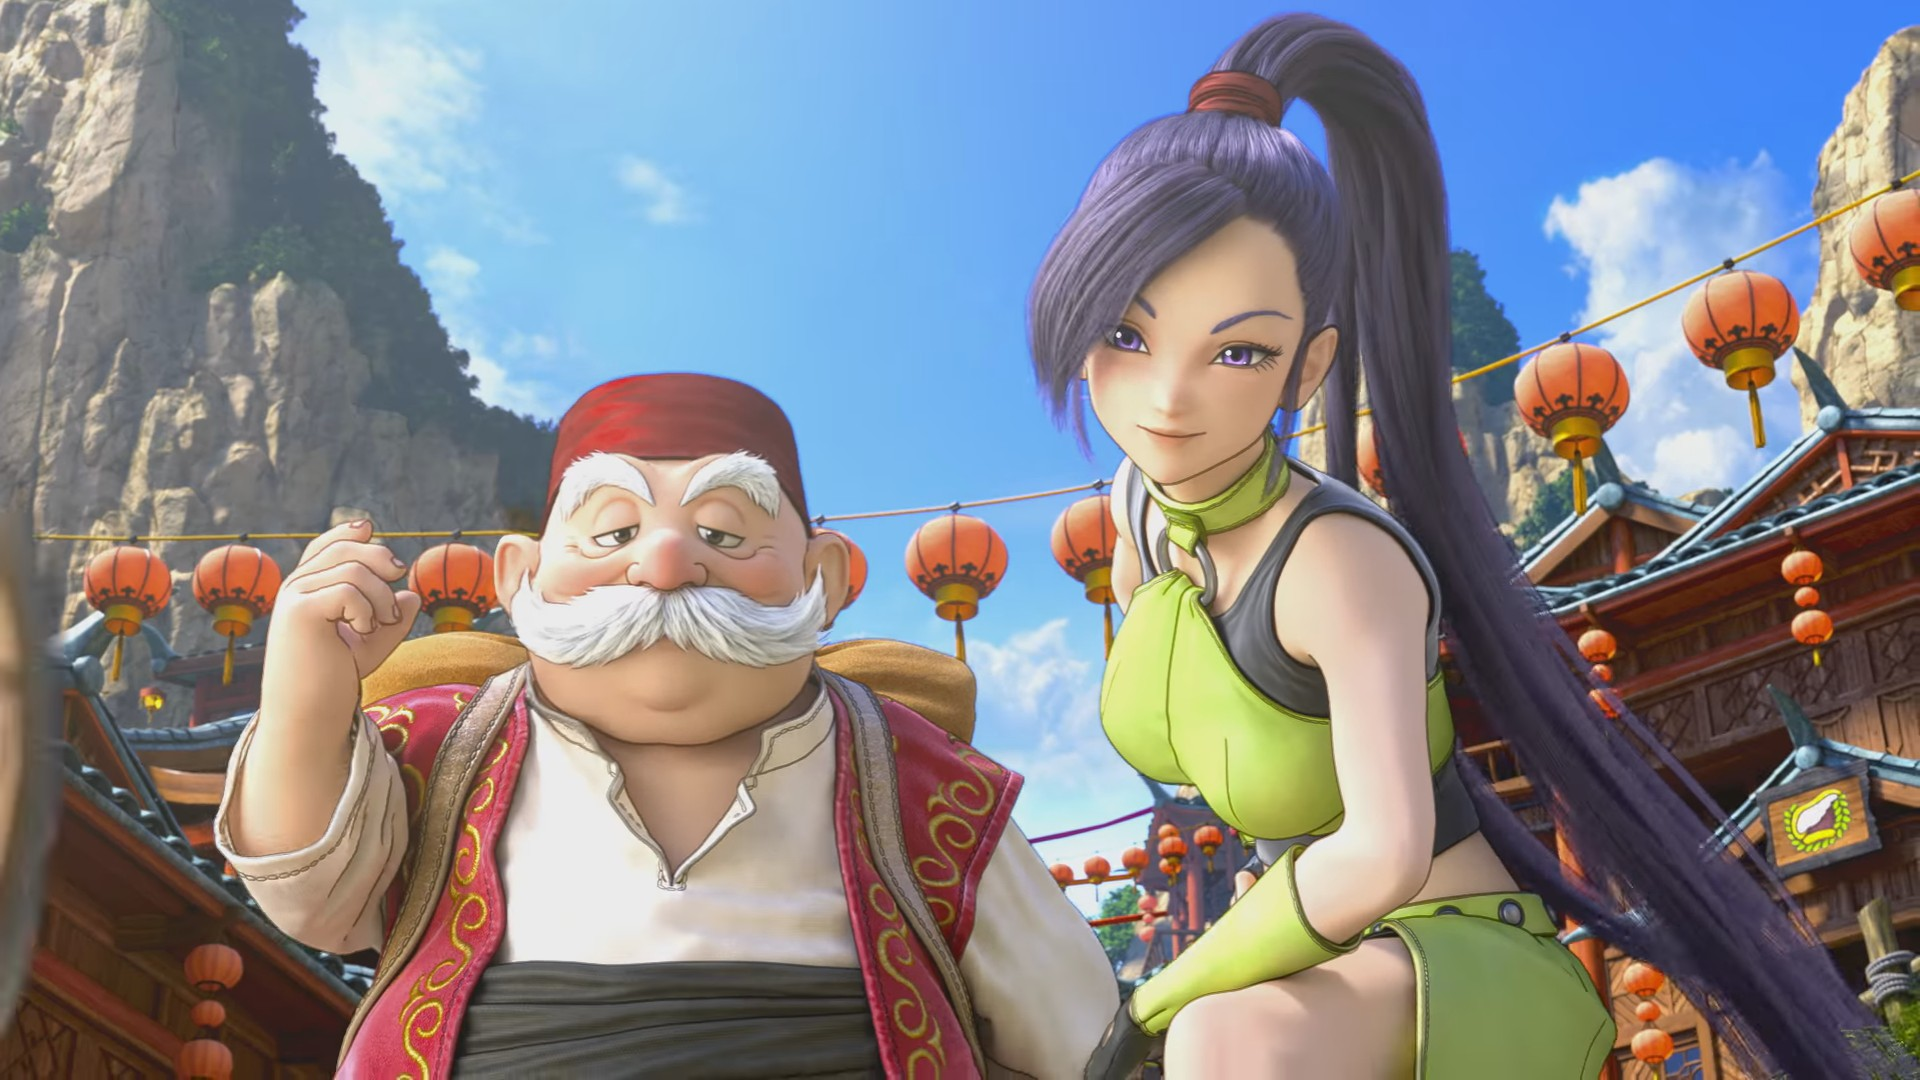 Dragon Quest Xi Designer Explains Why The Game Isn T Fully Open World And His Preference For Silent Protagonists